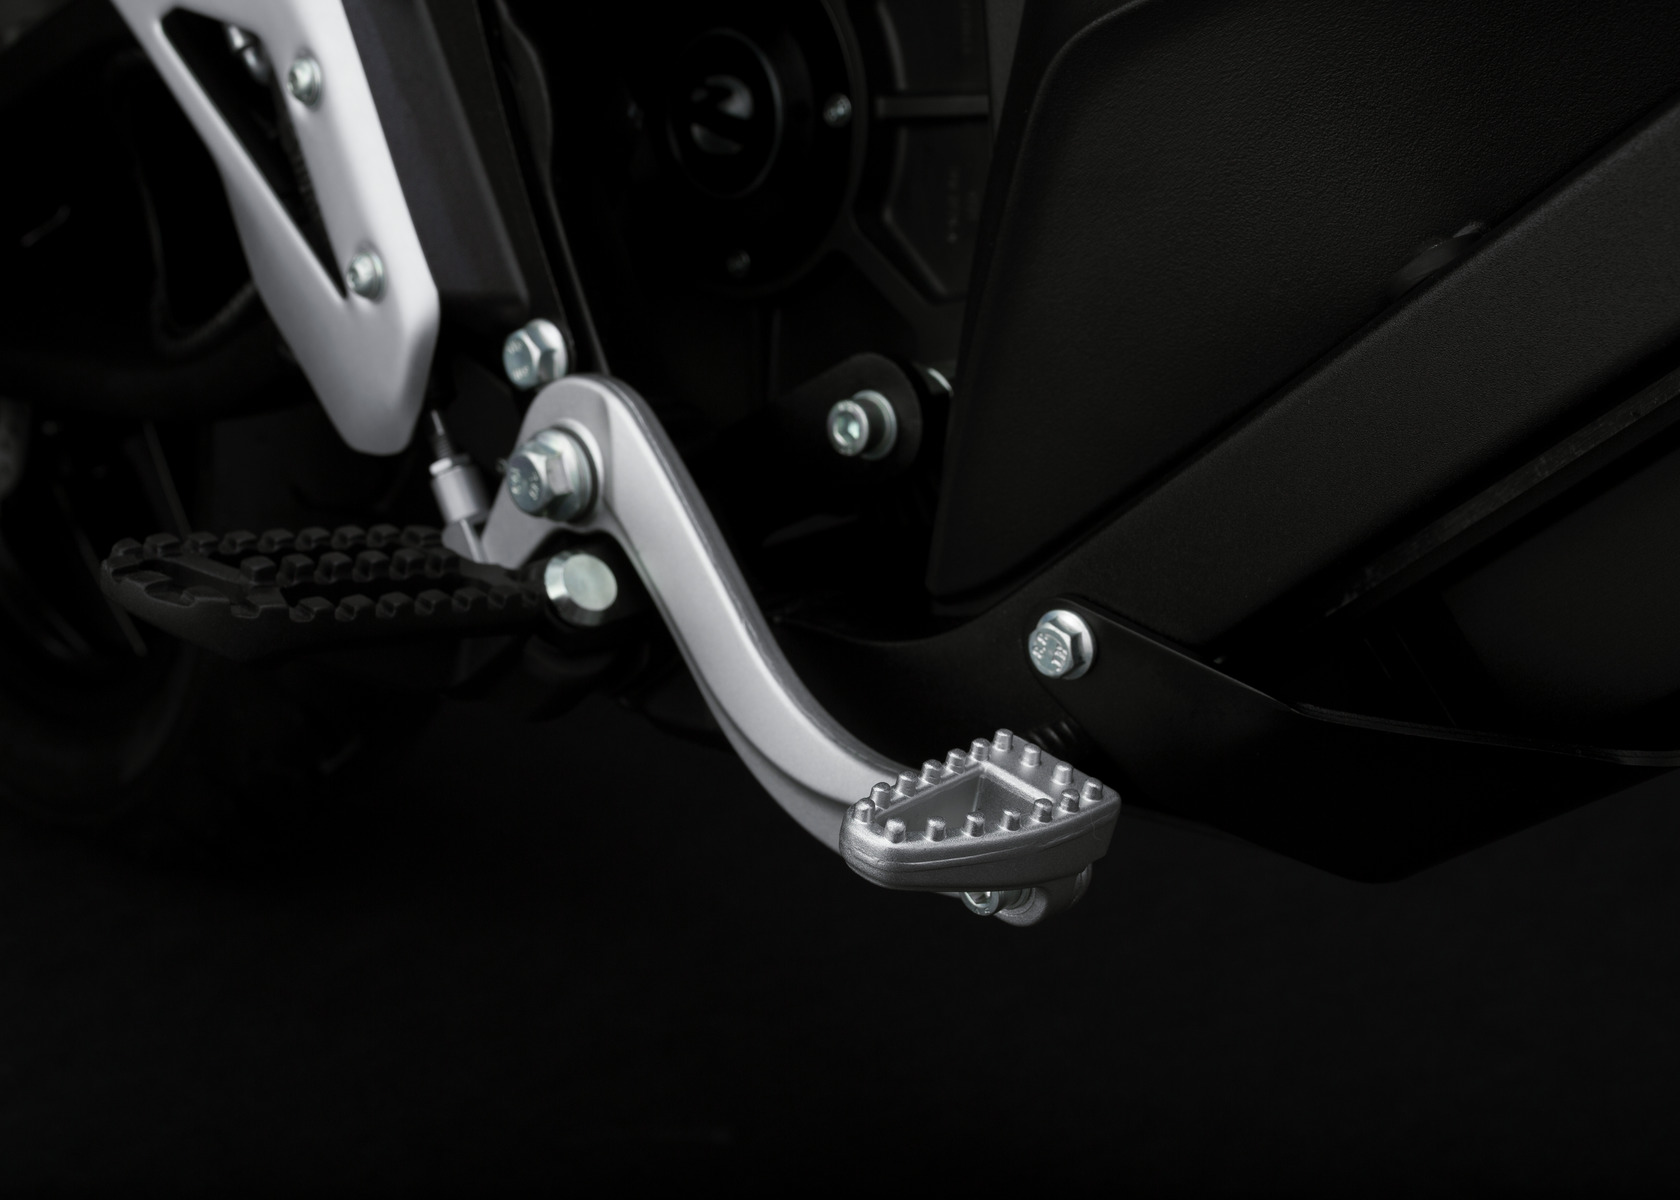 2016 Zero FXS Electric Motorcycle: Brake Pedal